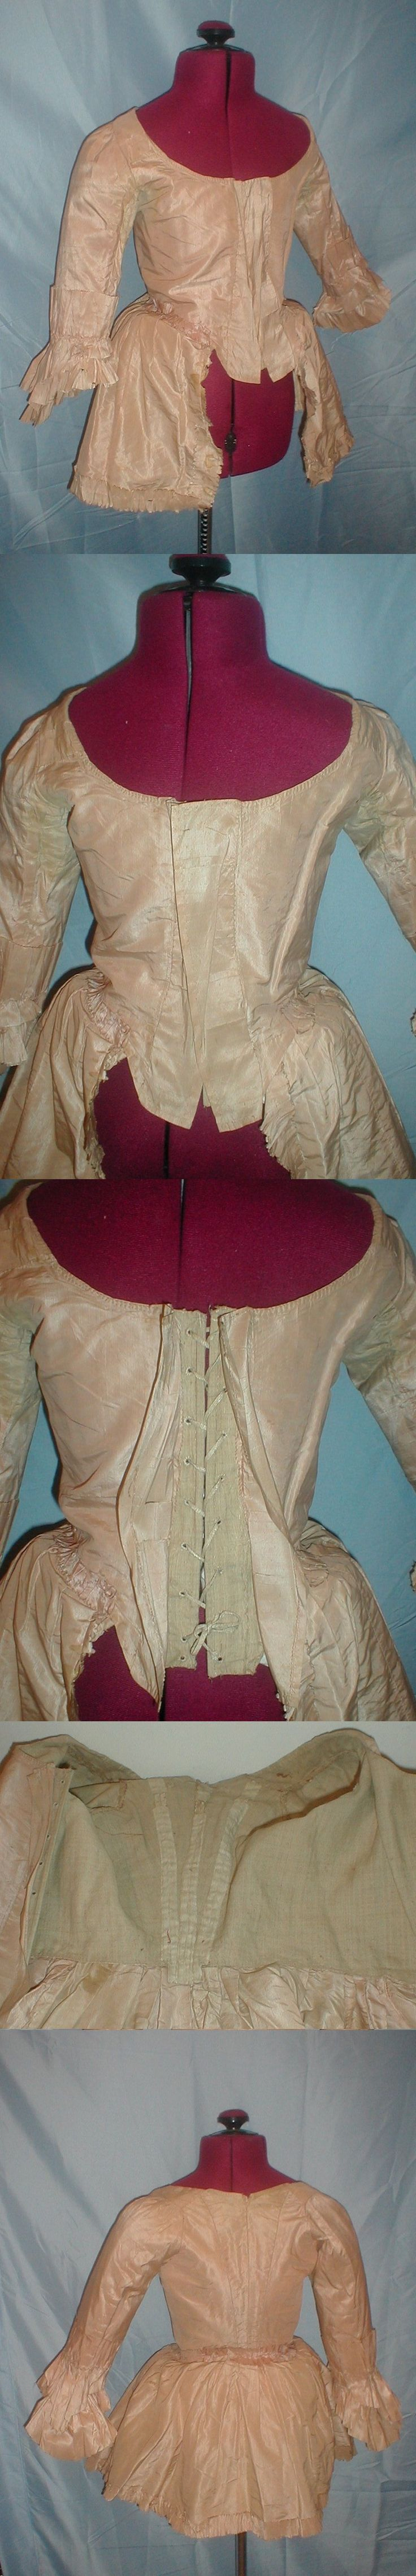 White pinafore apron ebay - Find Best Value And Selection For Your Antique Century Caraco Bodice Pink Silk Museum De Accessioned Search On Ebay World S Leading Marketplace